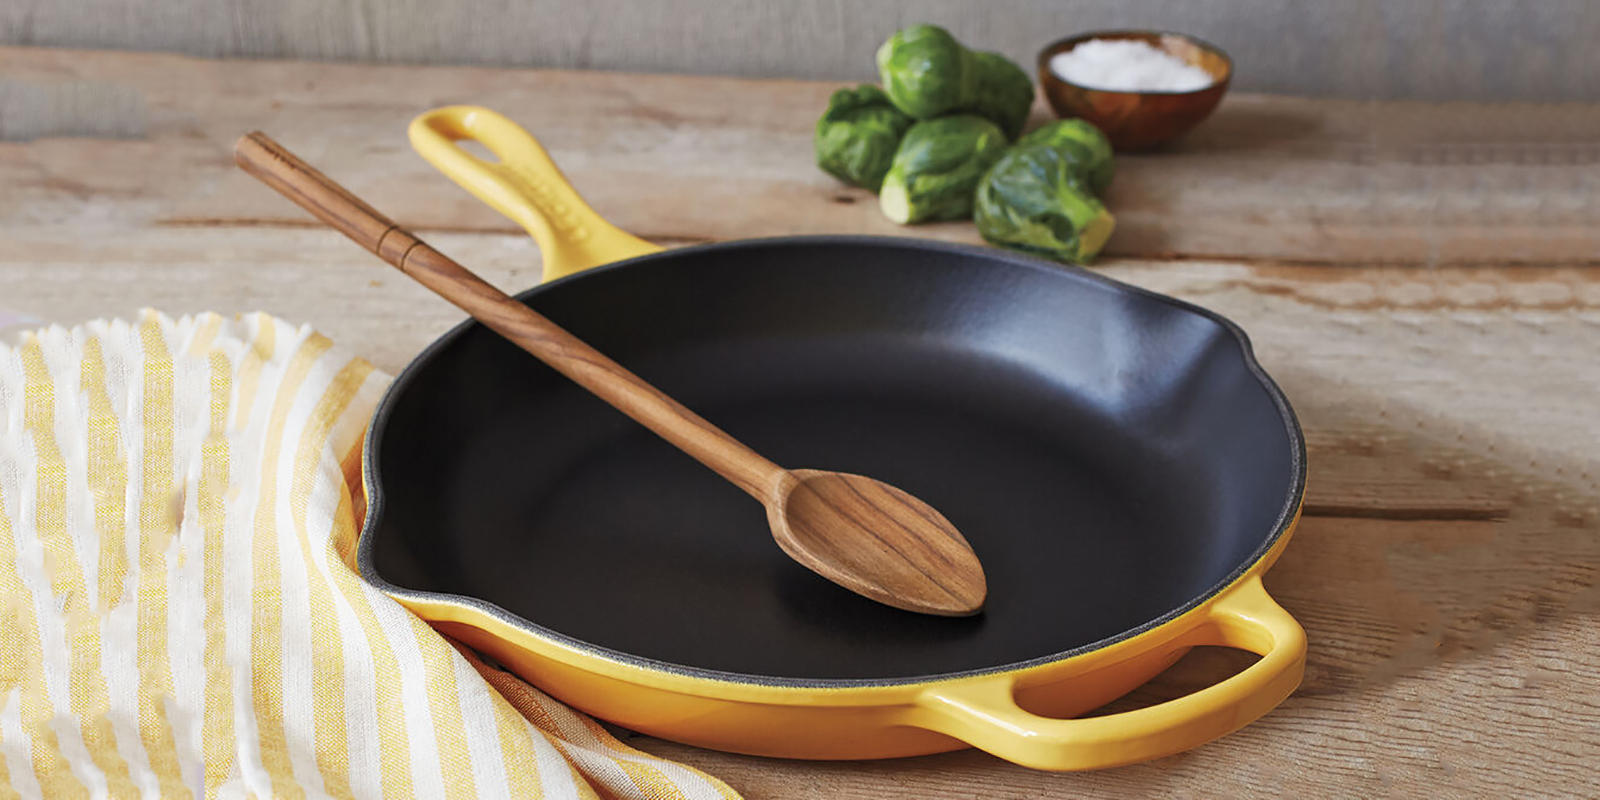 Le Creuset skillets under $100